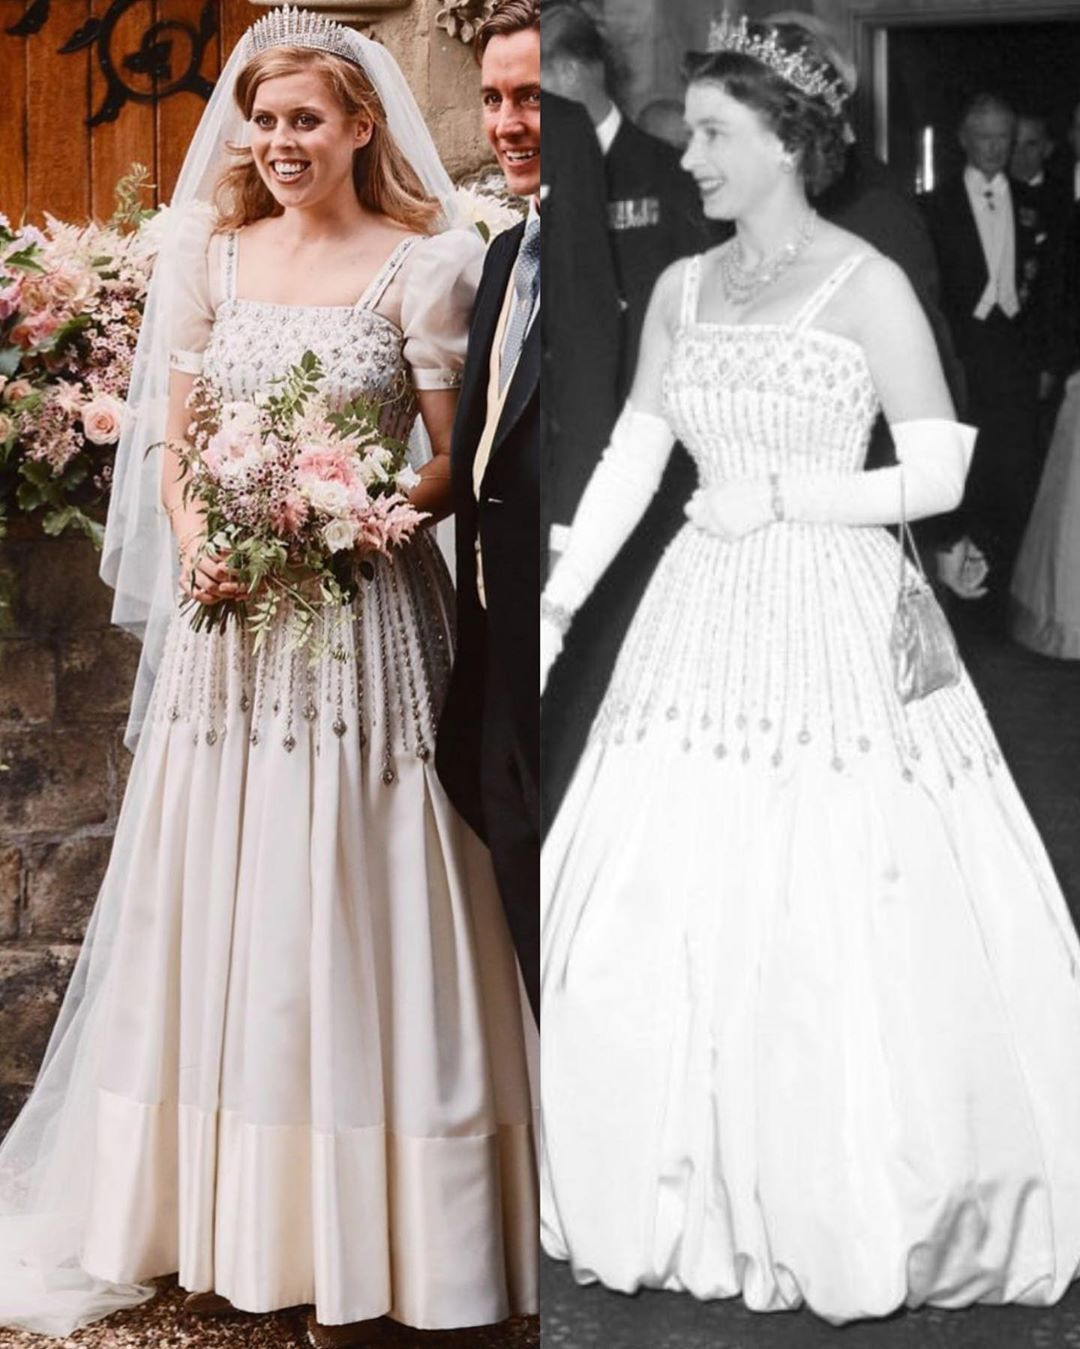 Royal Families Of Europe On Instagram Do You Like It For Her Wedding Dress Princess Beatrice Wedding Royal Wedding Dress Queen Elizabeth Wedding